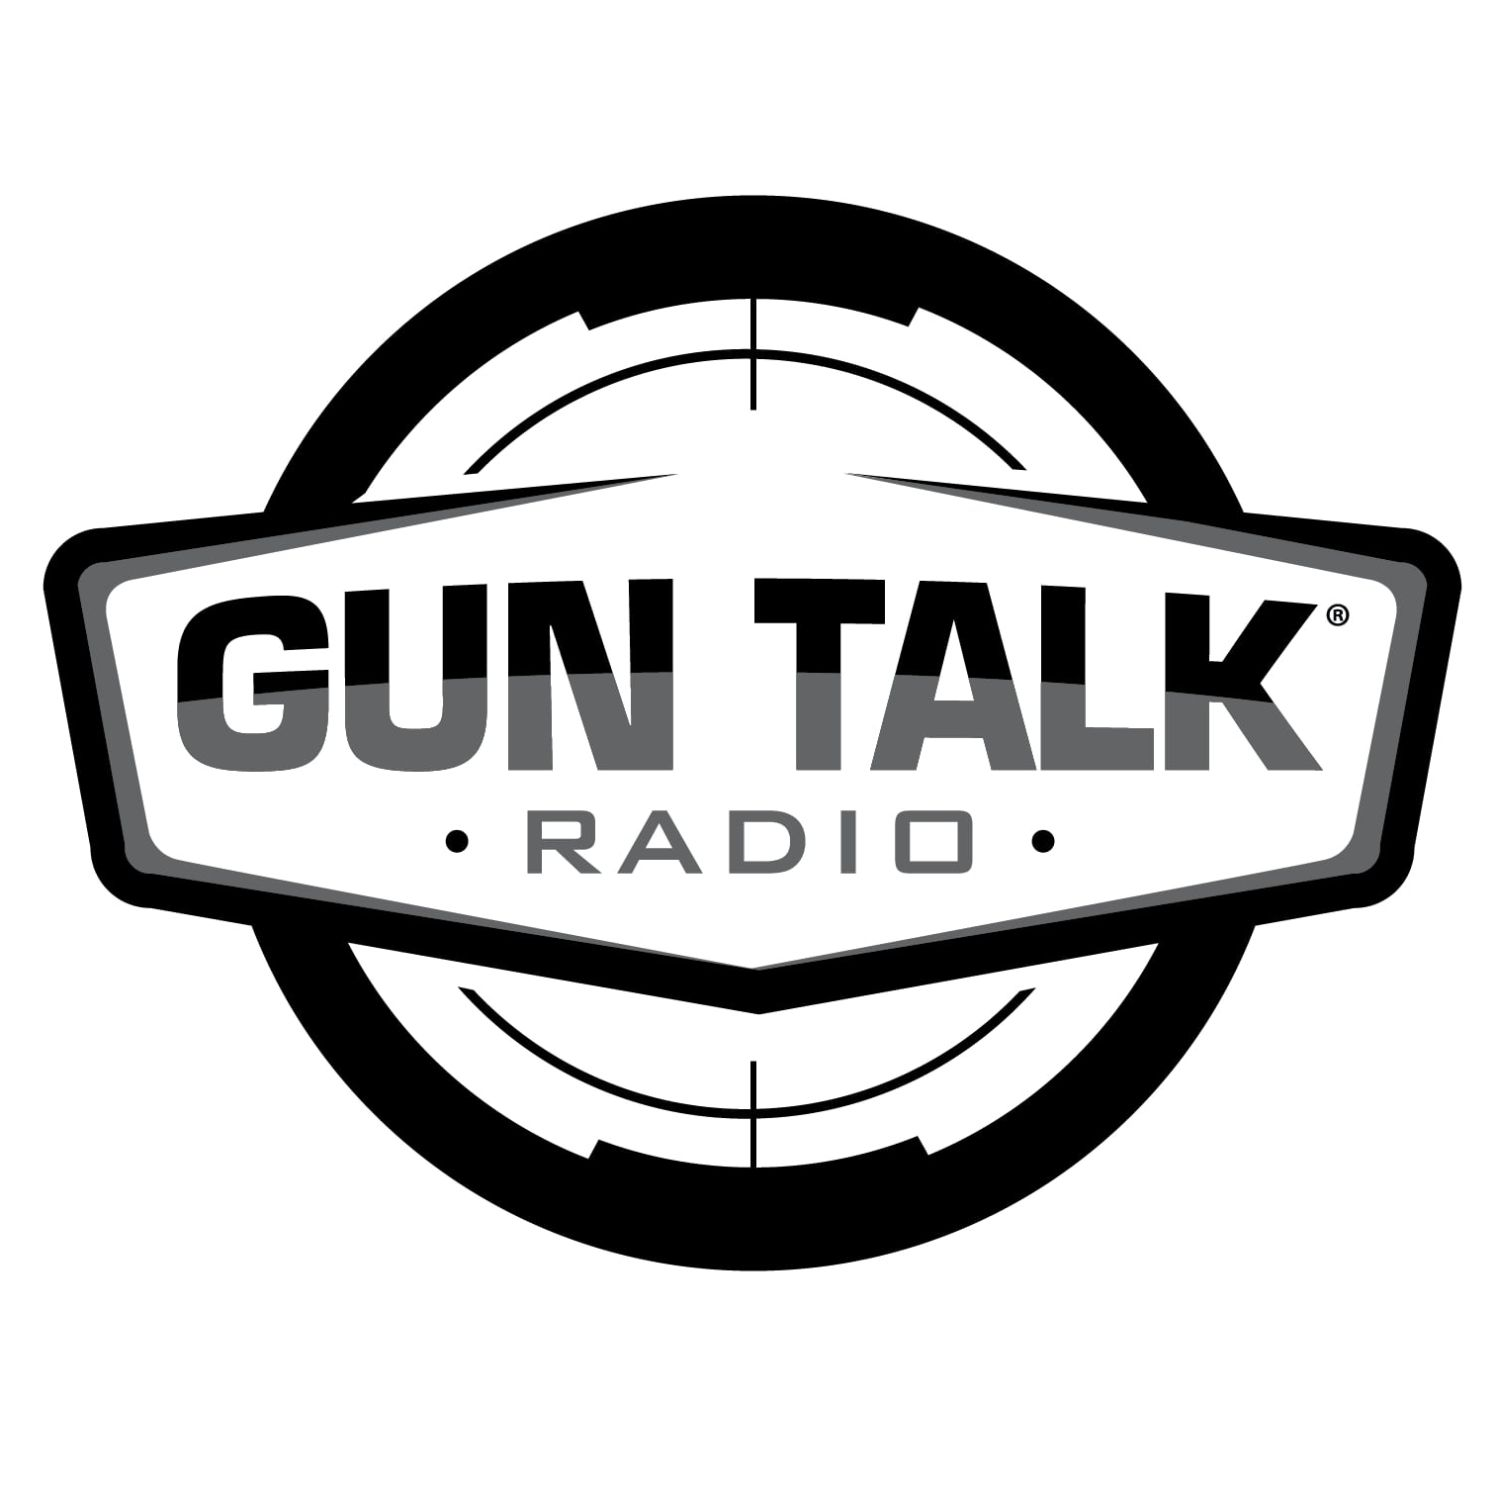 Artwork for Guntalk 2007-07-29 Part B